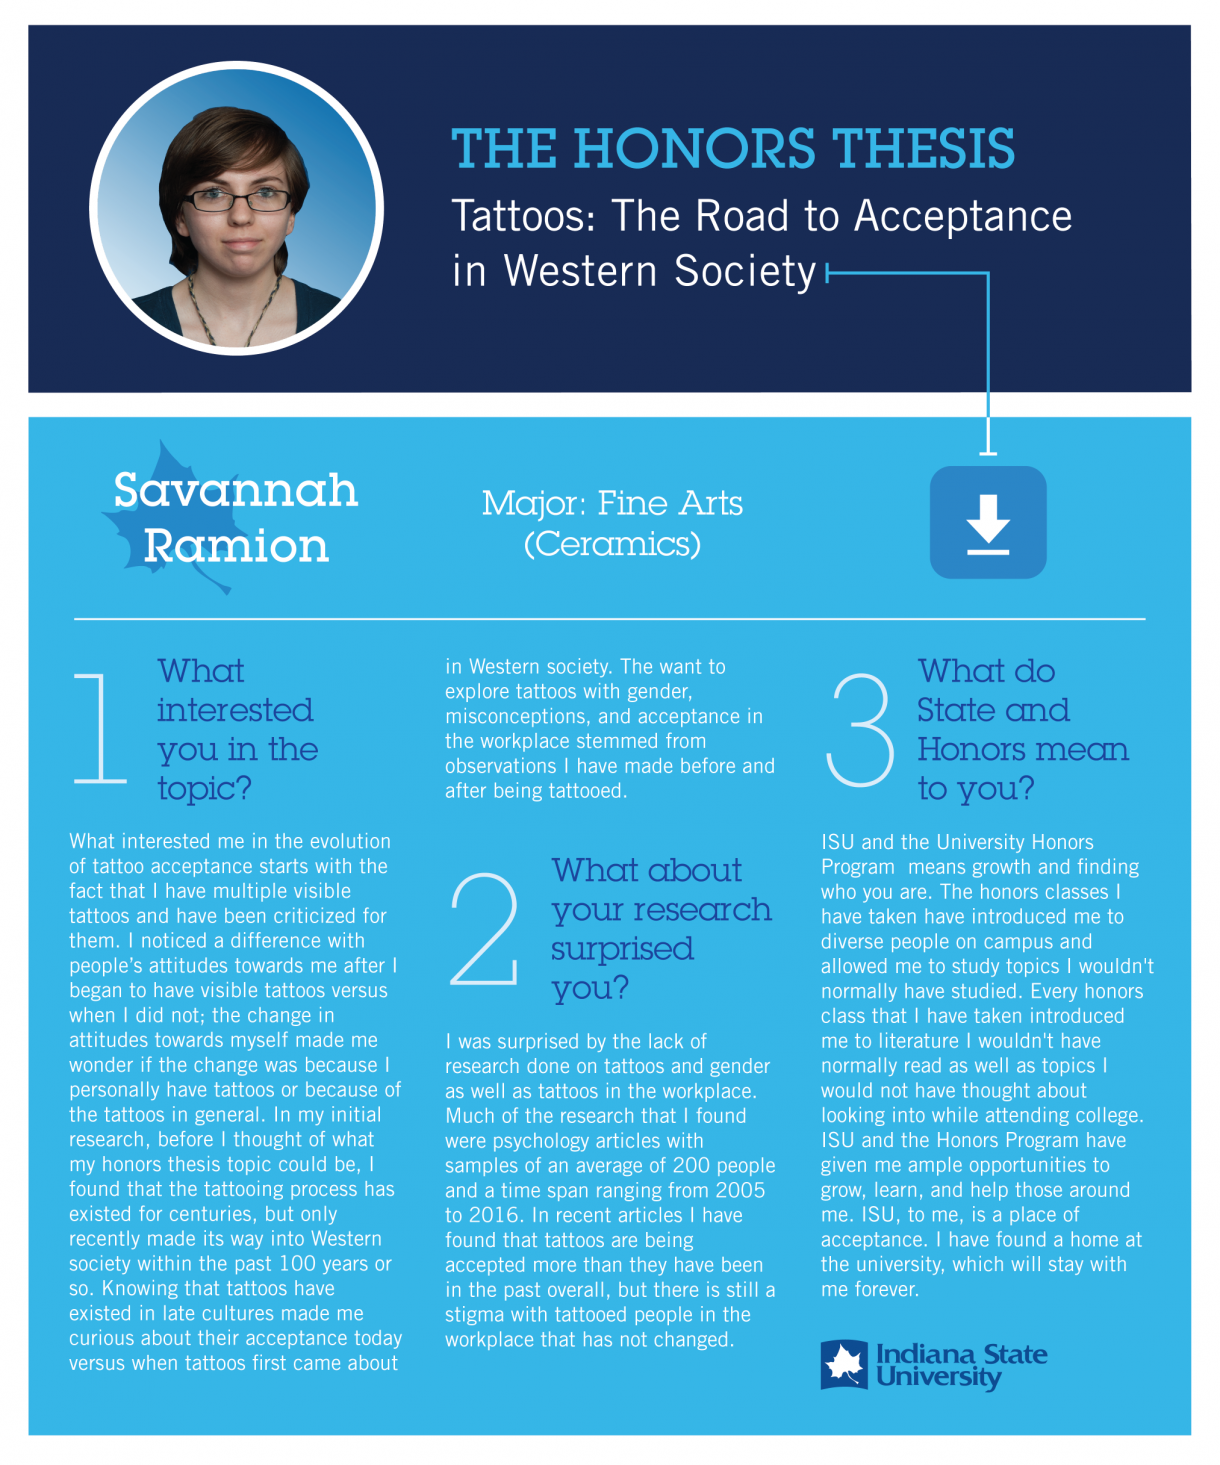 Honors Thesis: Savannah Ramion